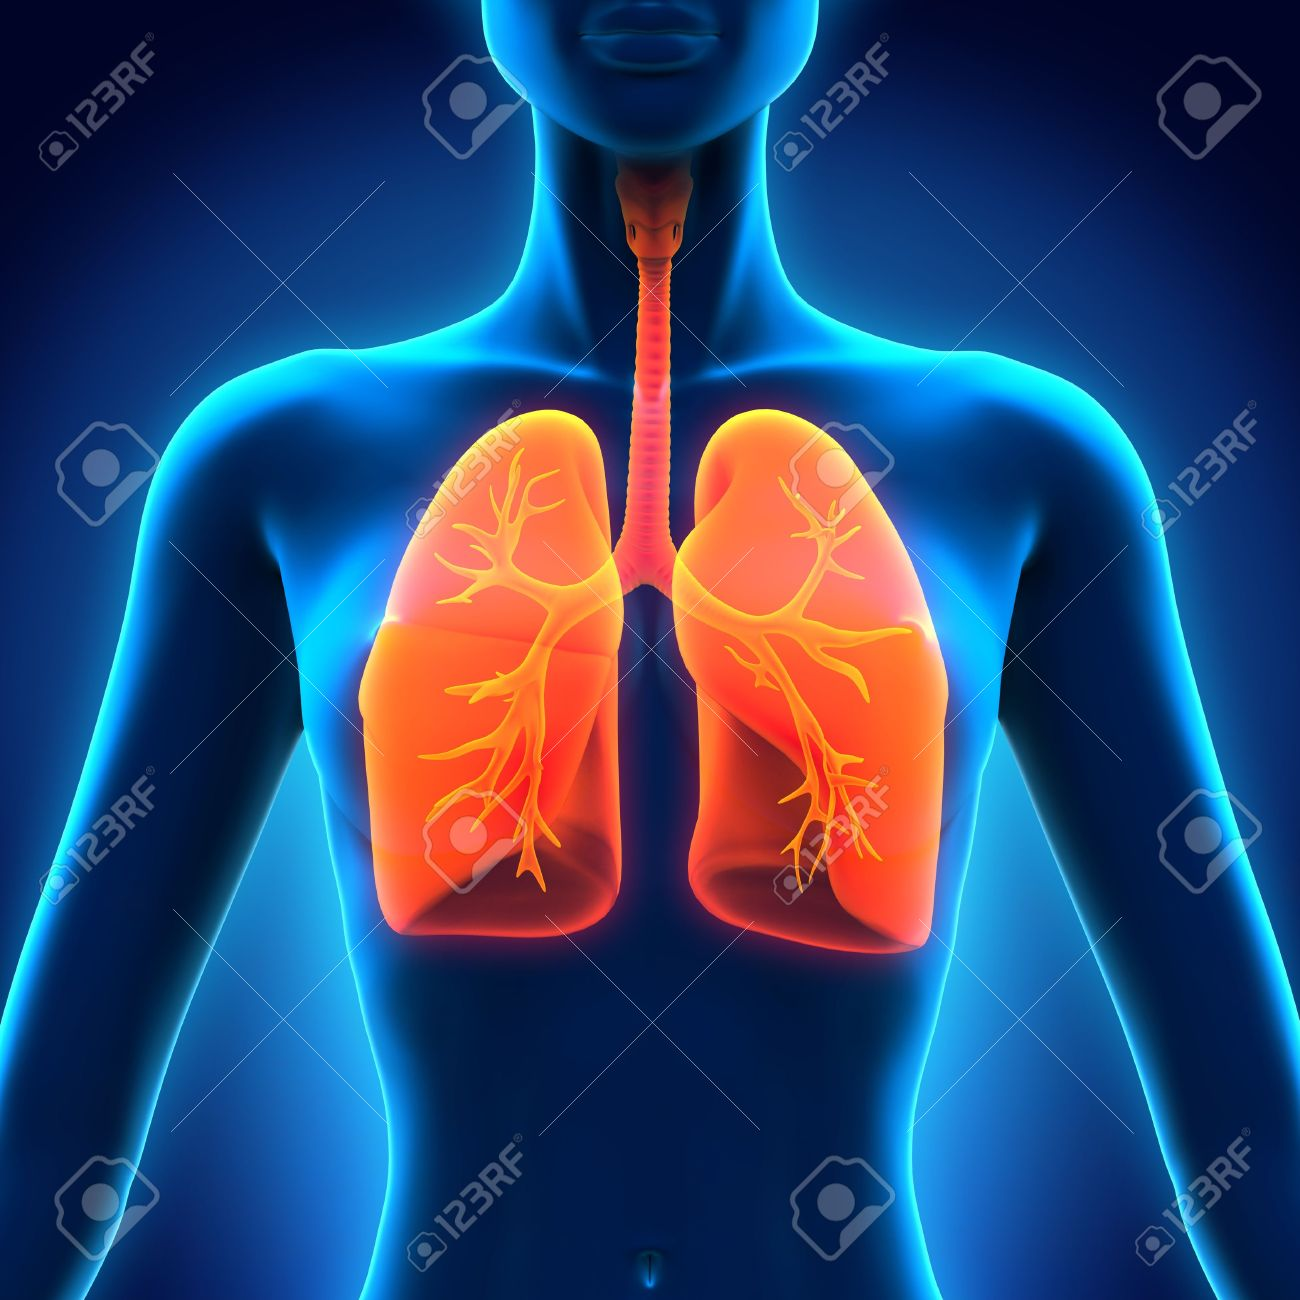 Female Anatomy Of Human Respiratory System Stock Photo Picture And